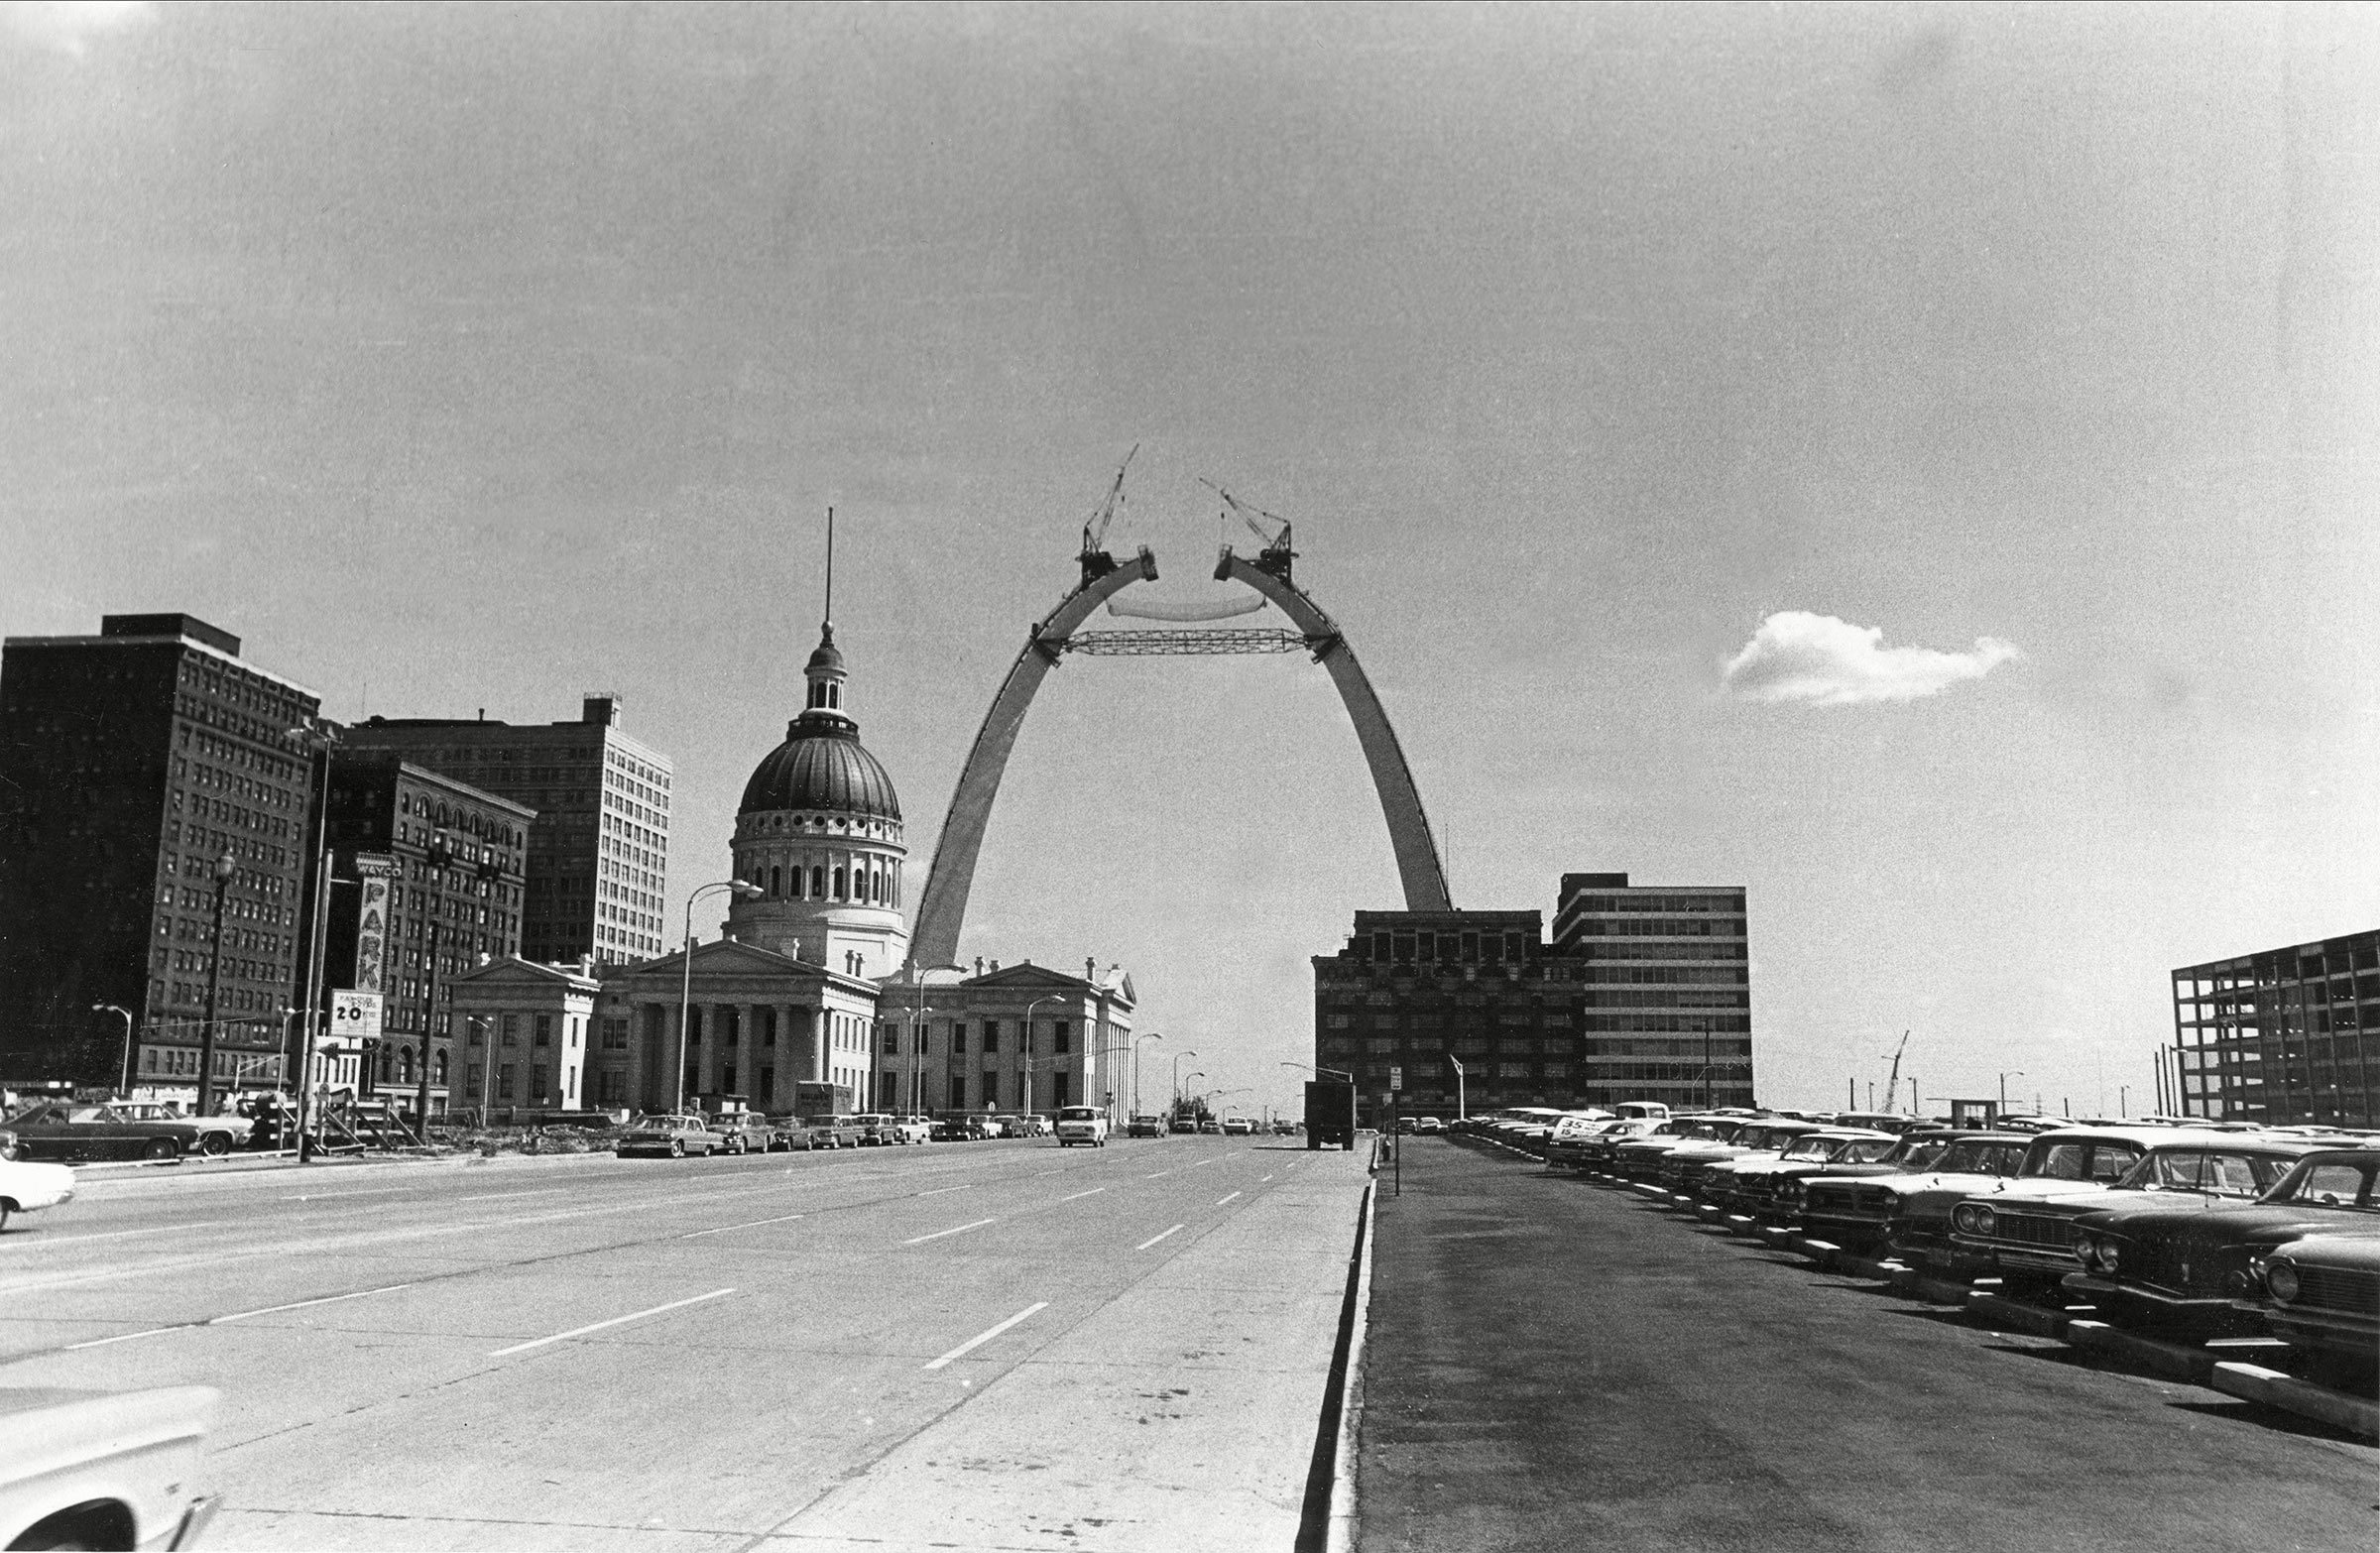 Monument célèbre : construction du Gateway Arch de la ville de Saint-Louis, au Missouri.